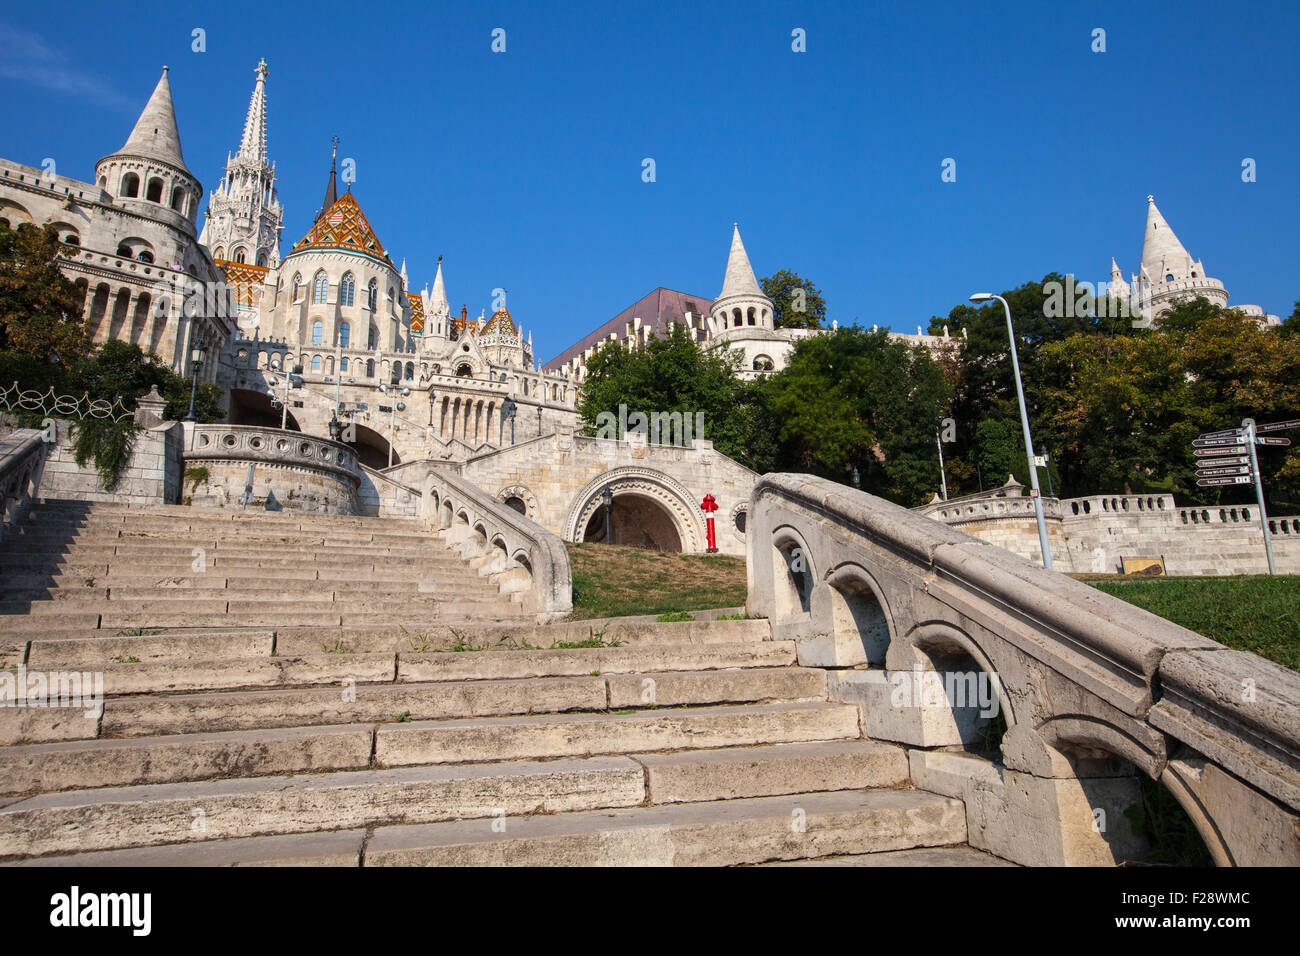 The historic Fisherman's Bastion in Budapest, Hungary. - Stock Image